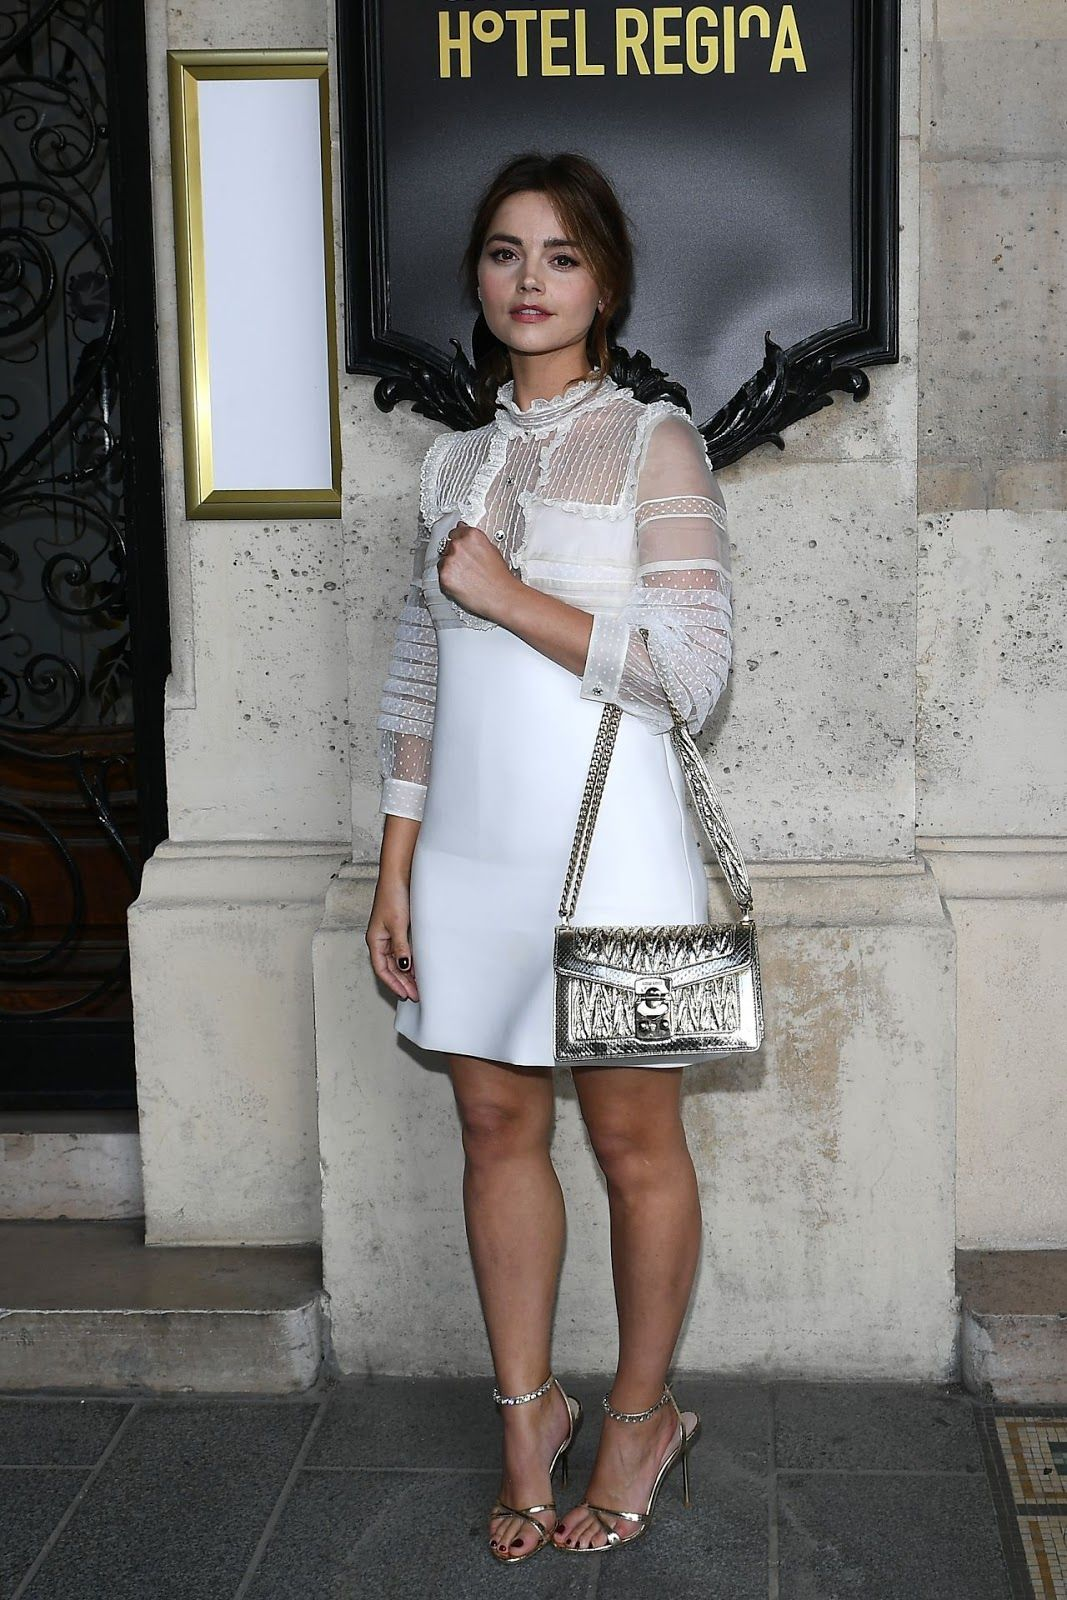 Photos Jenna-Louise Coleman nudes (54 photos), Ass, Is a cute, Instagram, cleavage 2015